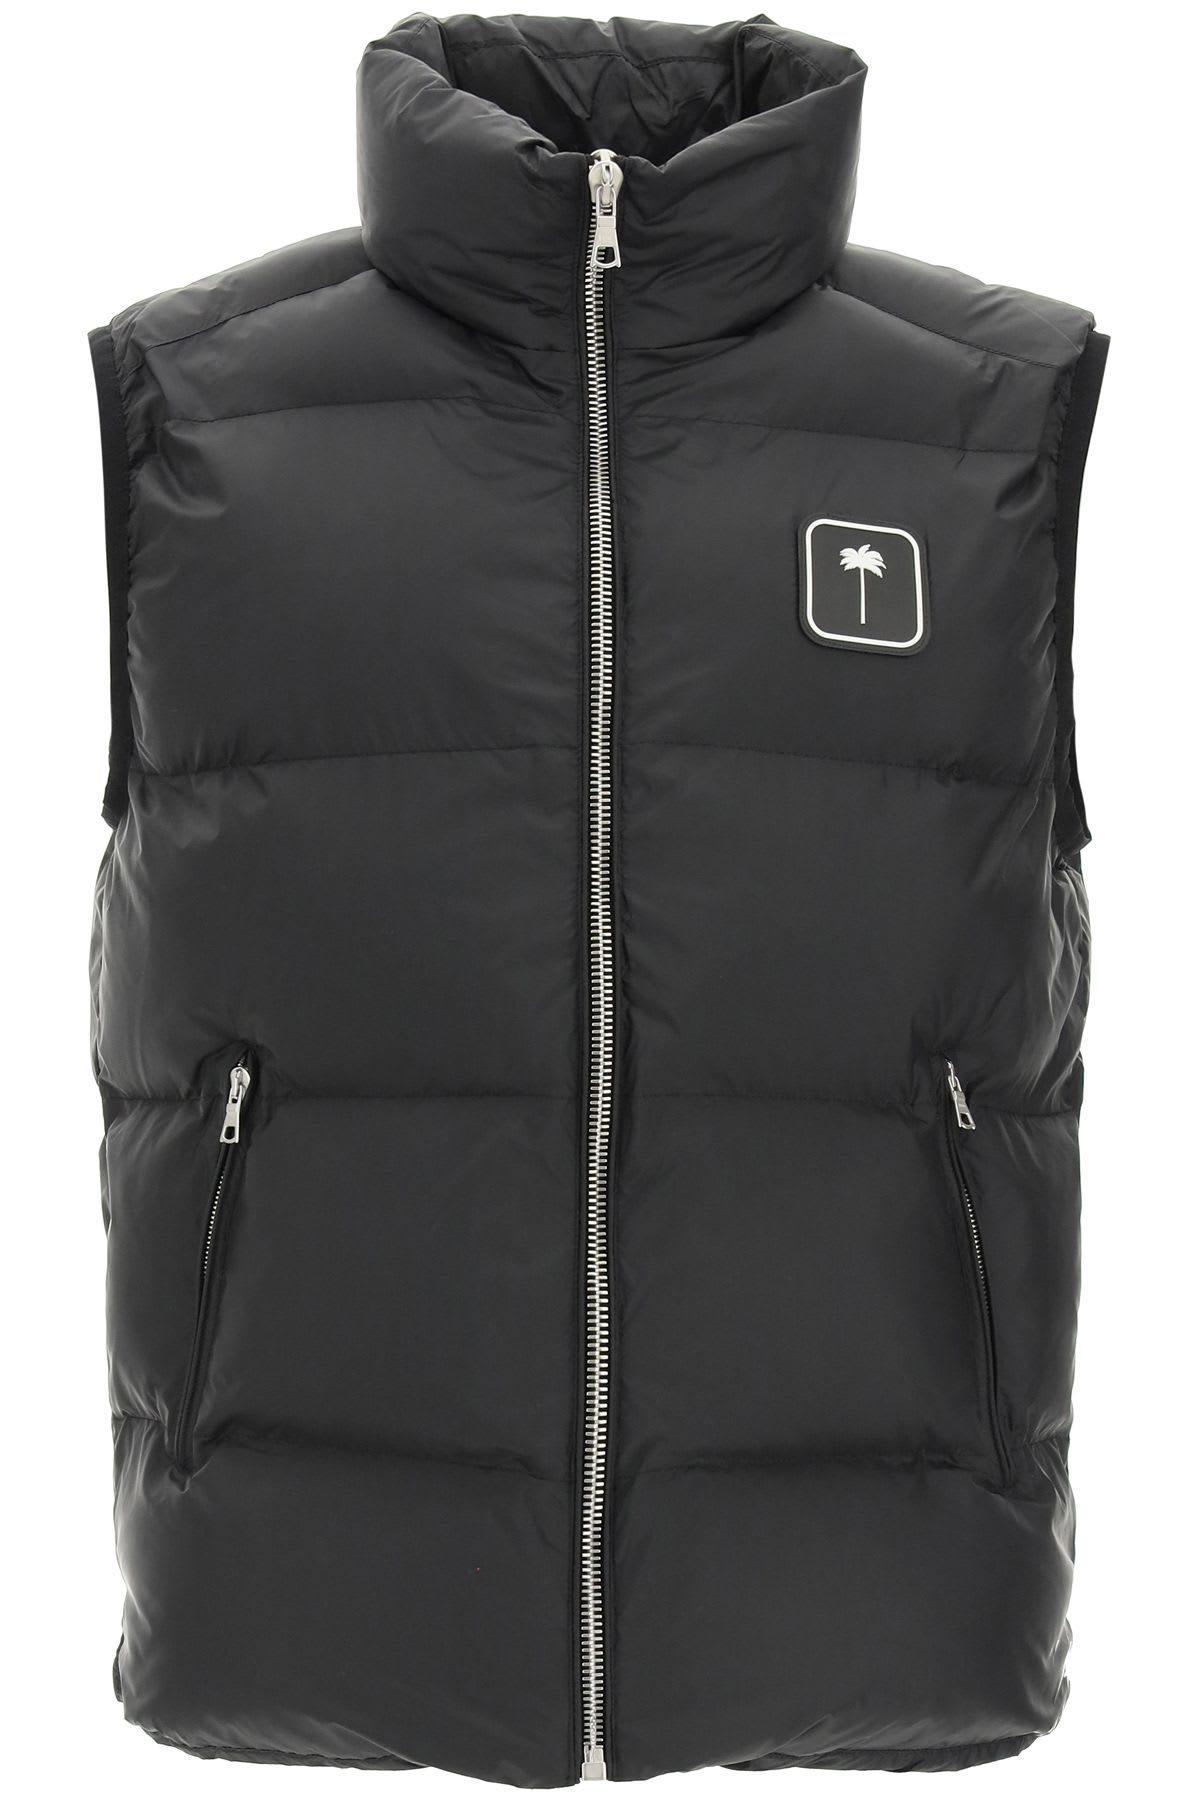 Palm Angels Puffer Vest With Palm Tree Logo